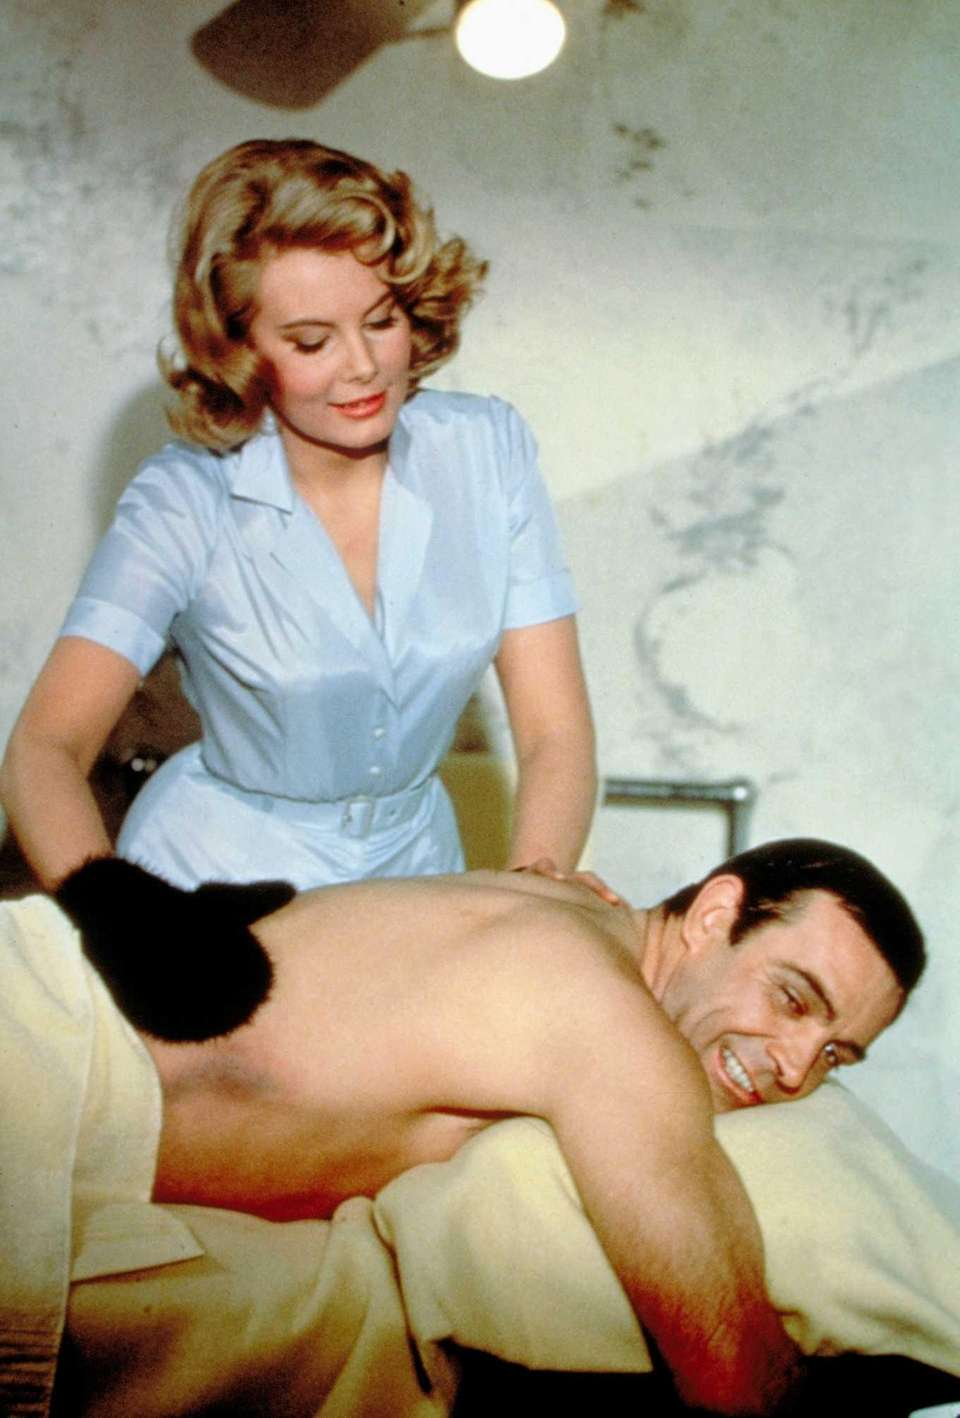 Molly Peters and Sean Connery are shown in